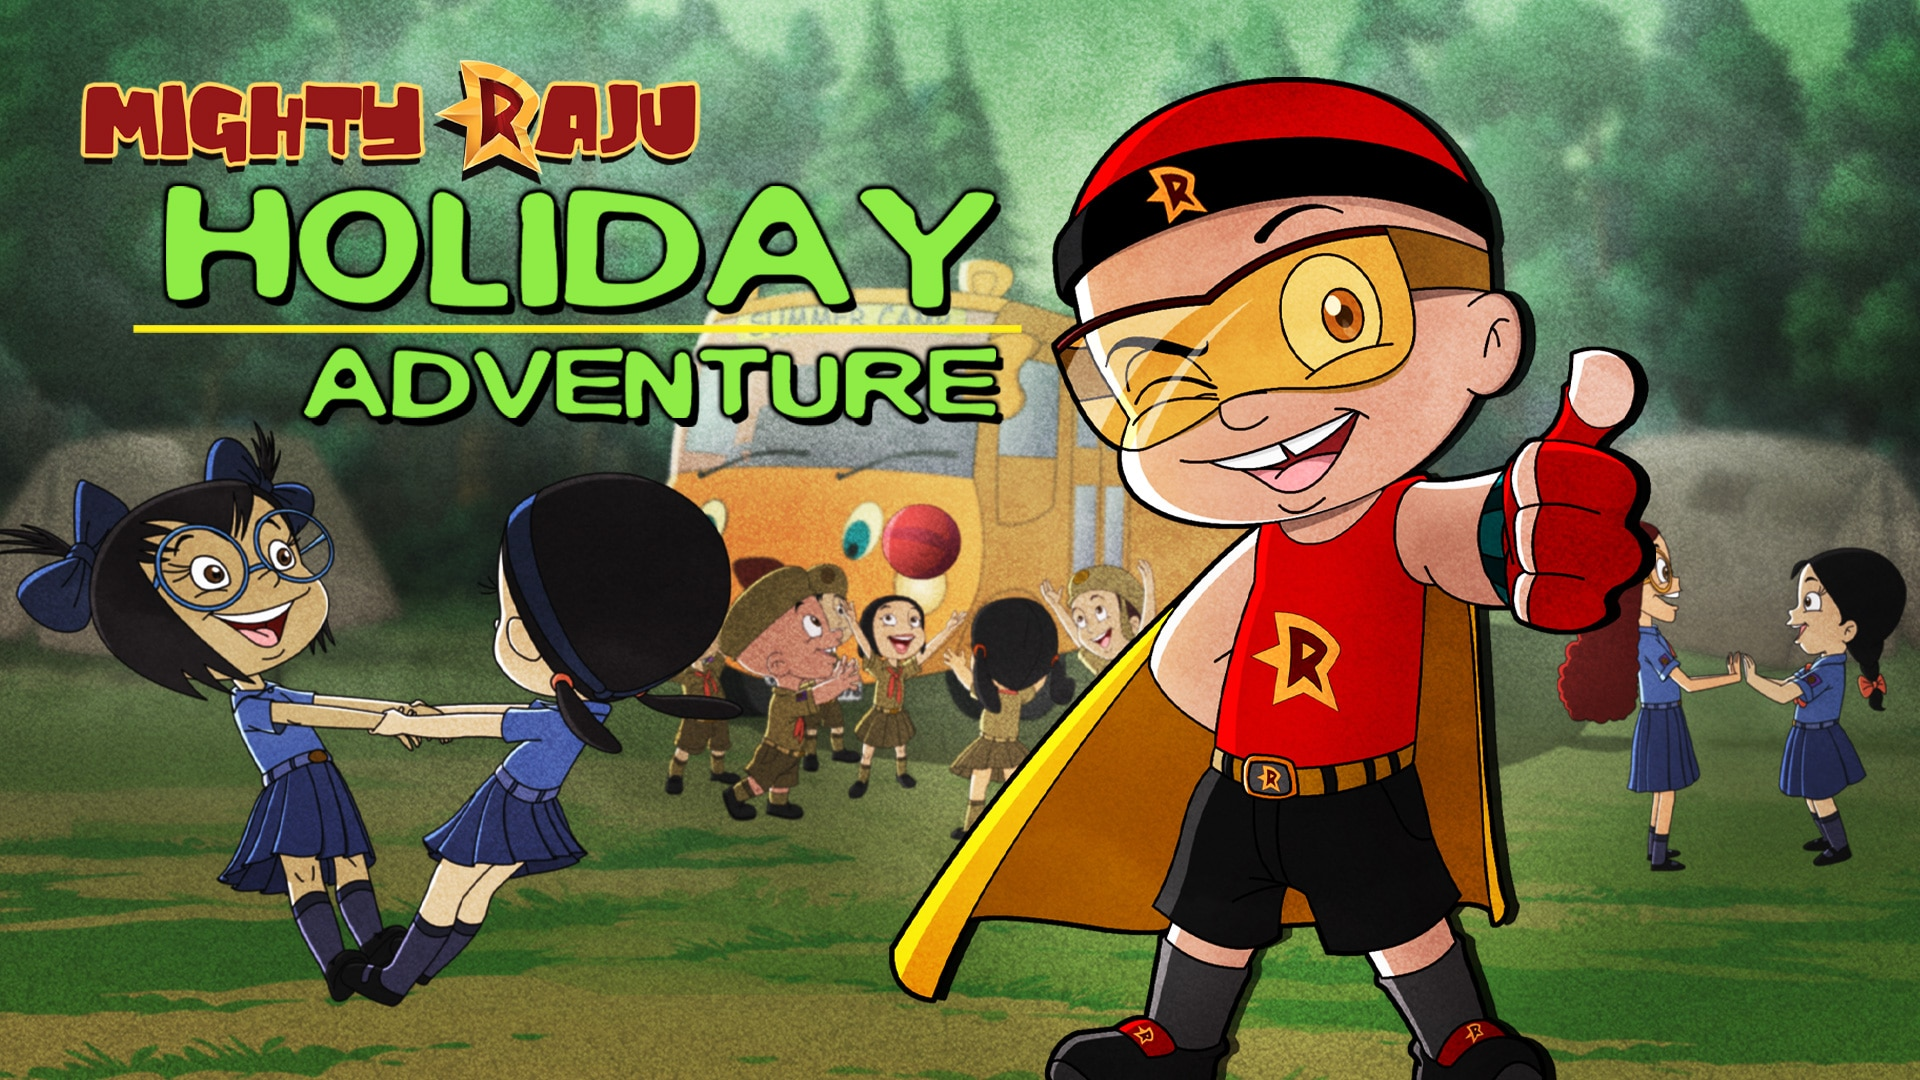 Mighty Raju Holiday Adventure Full Movie In Telugu